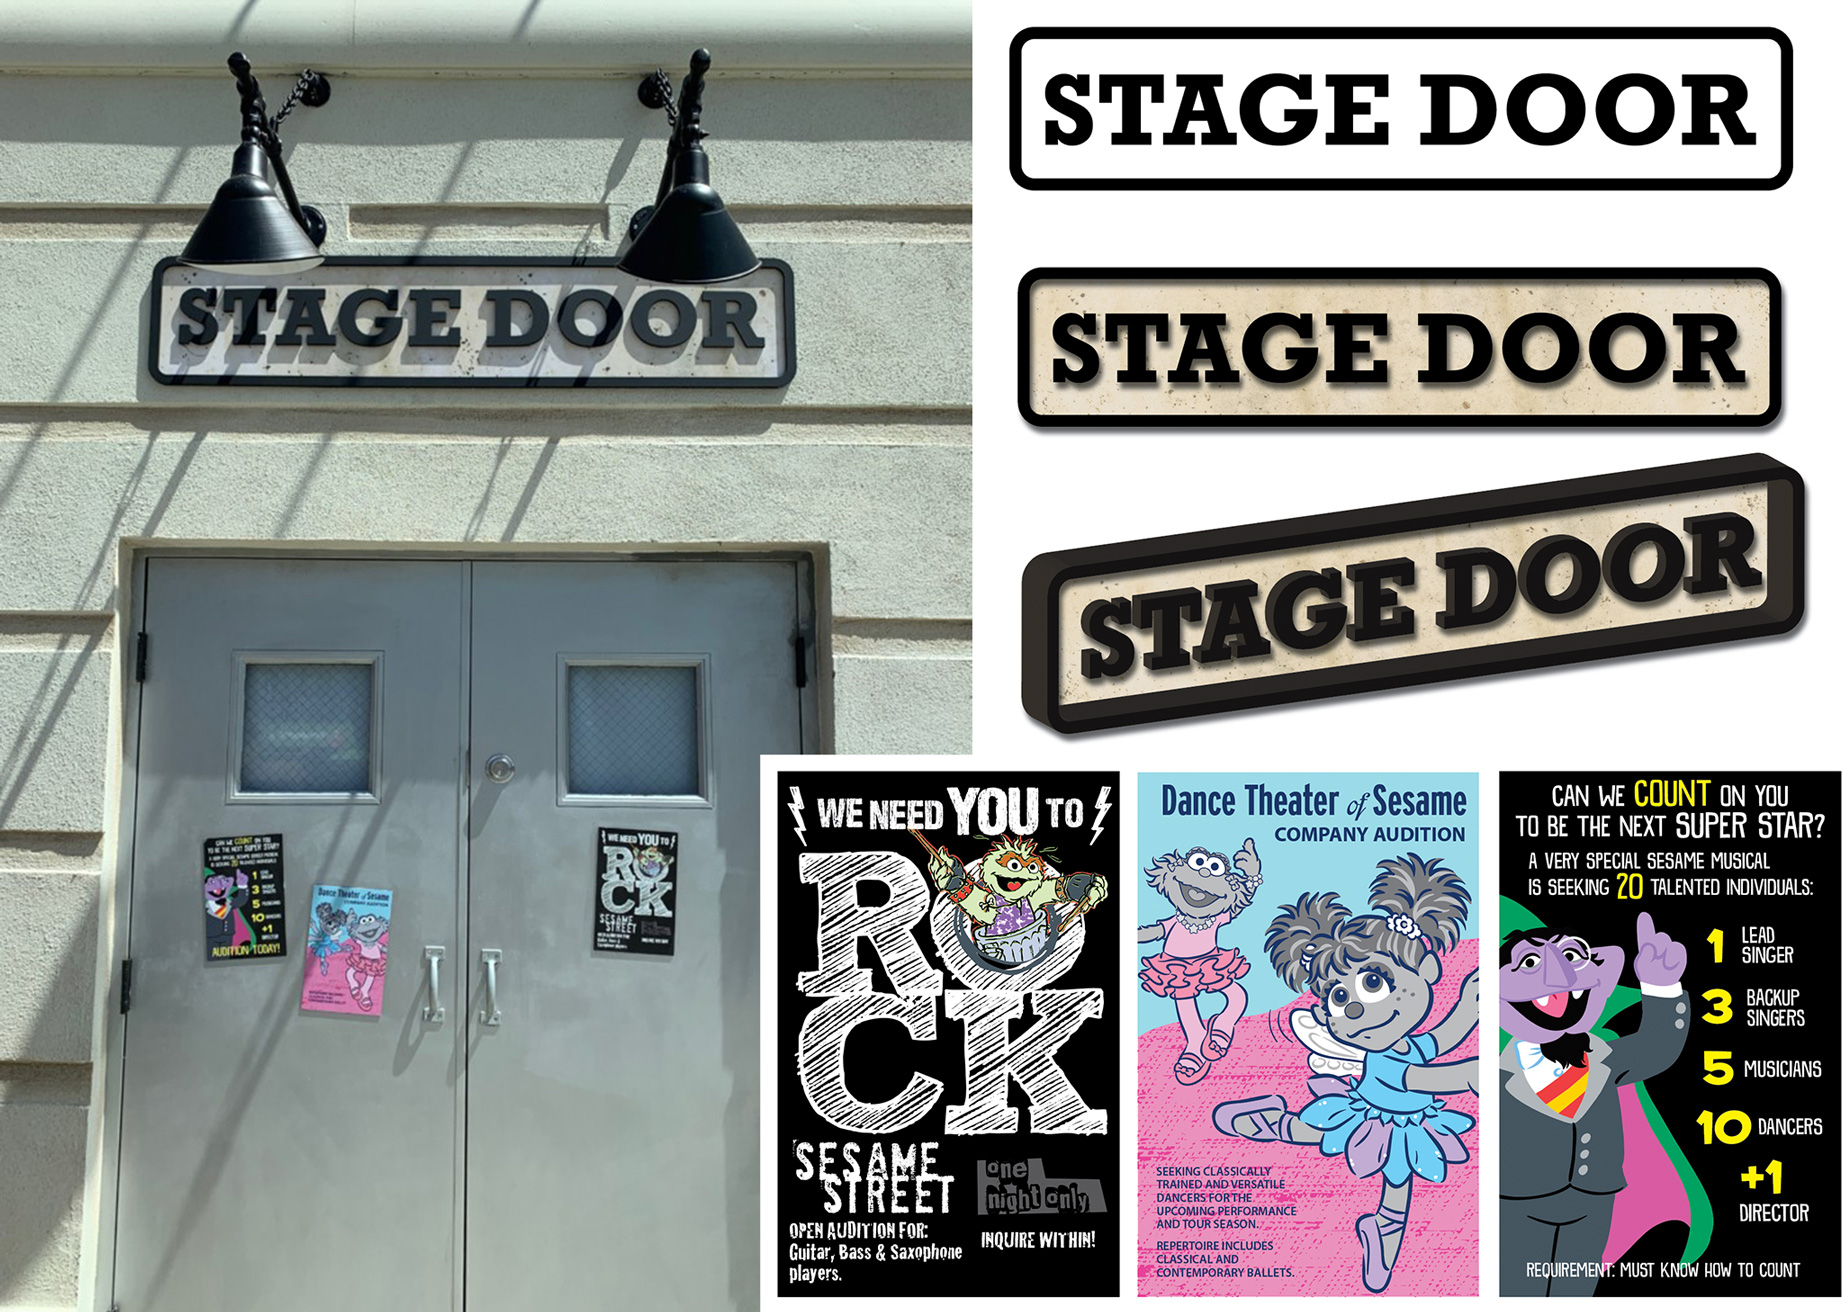 Theater Building and Audition Flyers